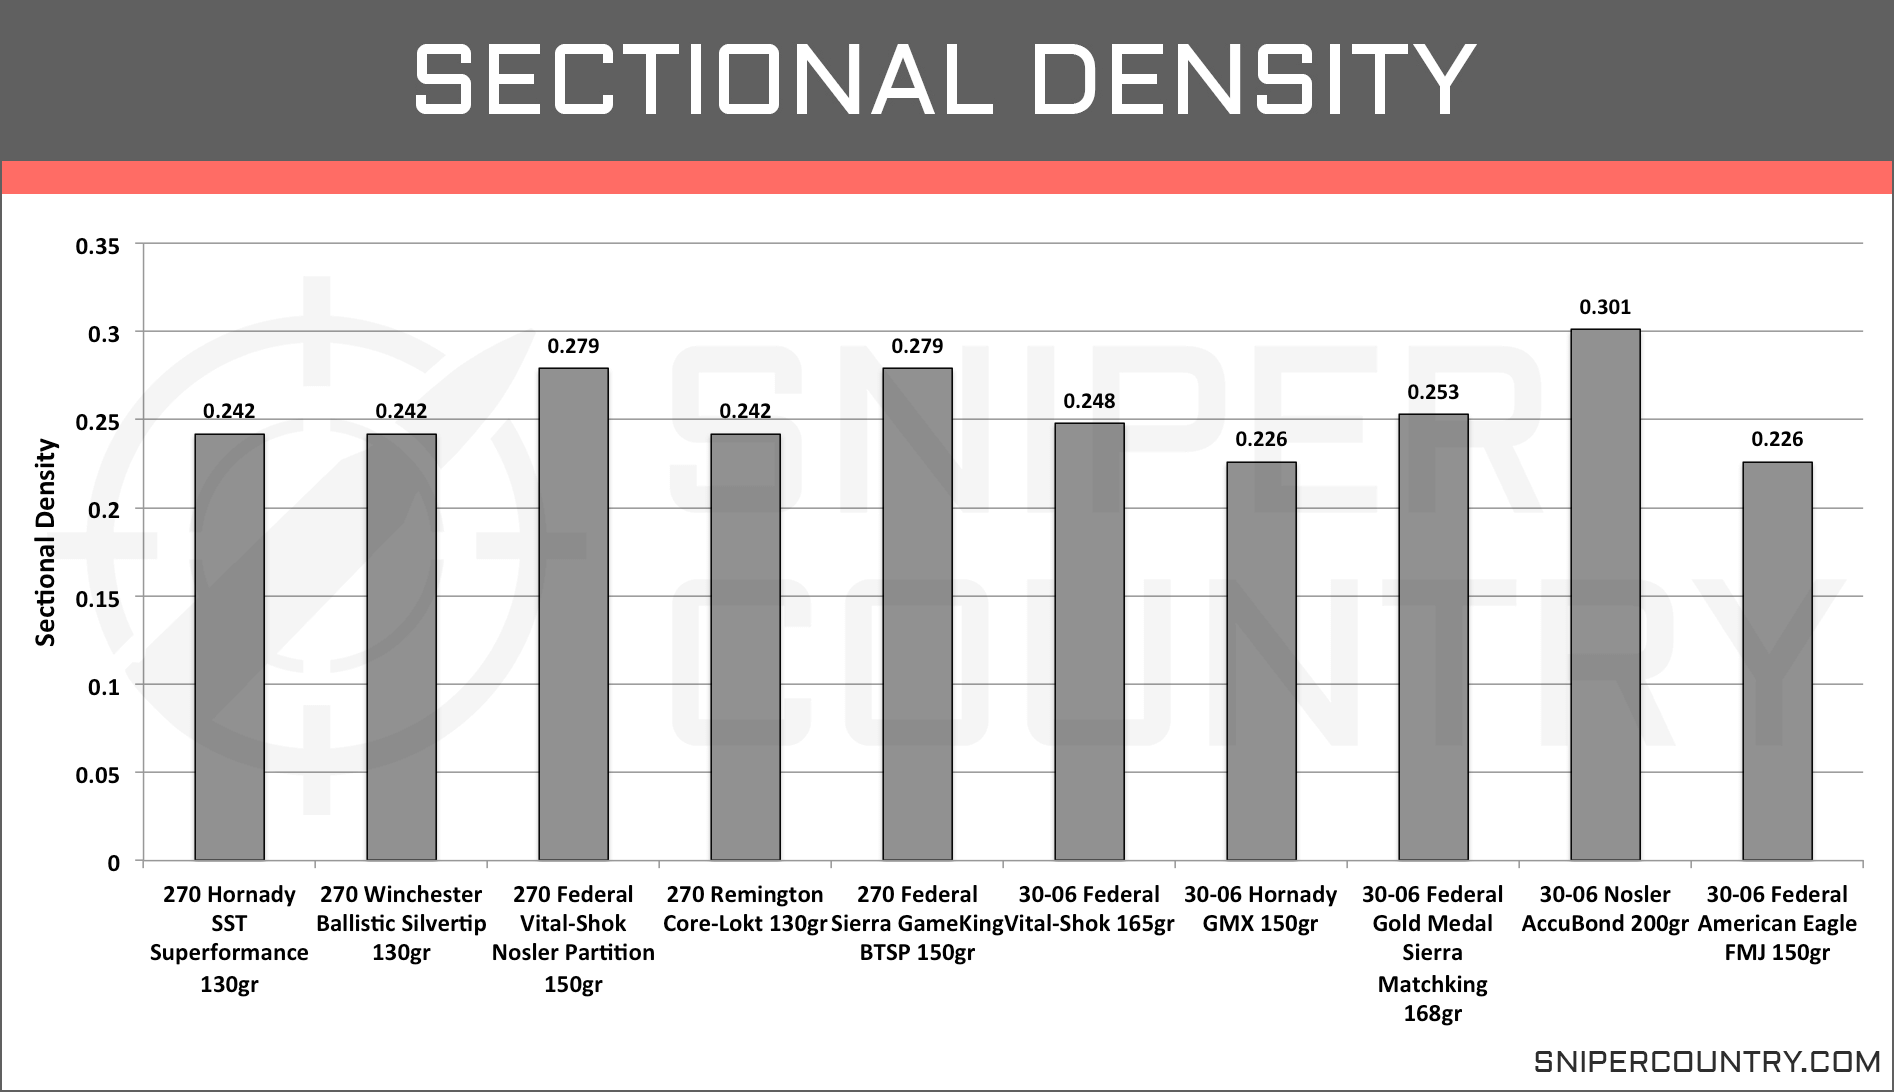 Sectional Density .270 Win vs .30-06 Sprg